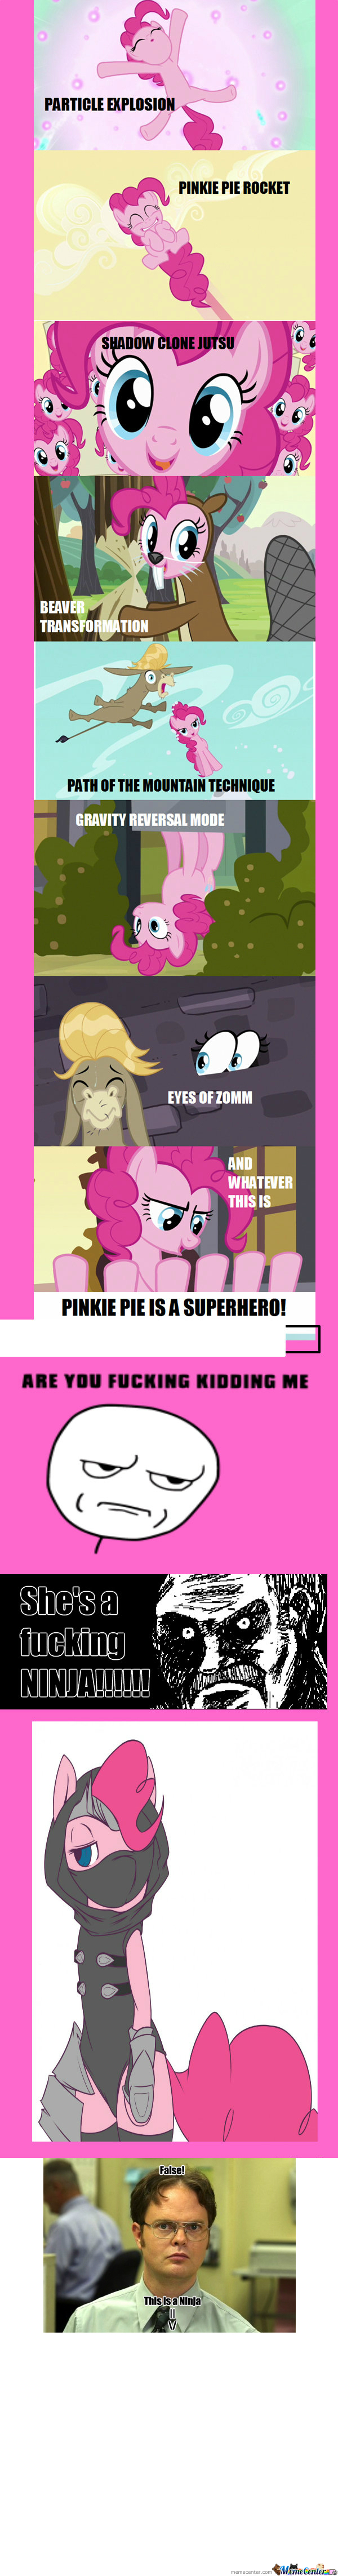 [RMX] Wrong About Pinkie Pie